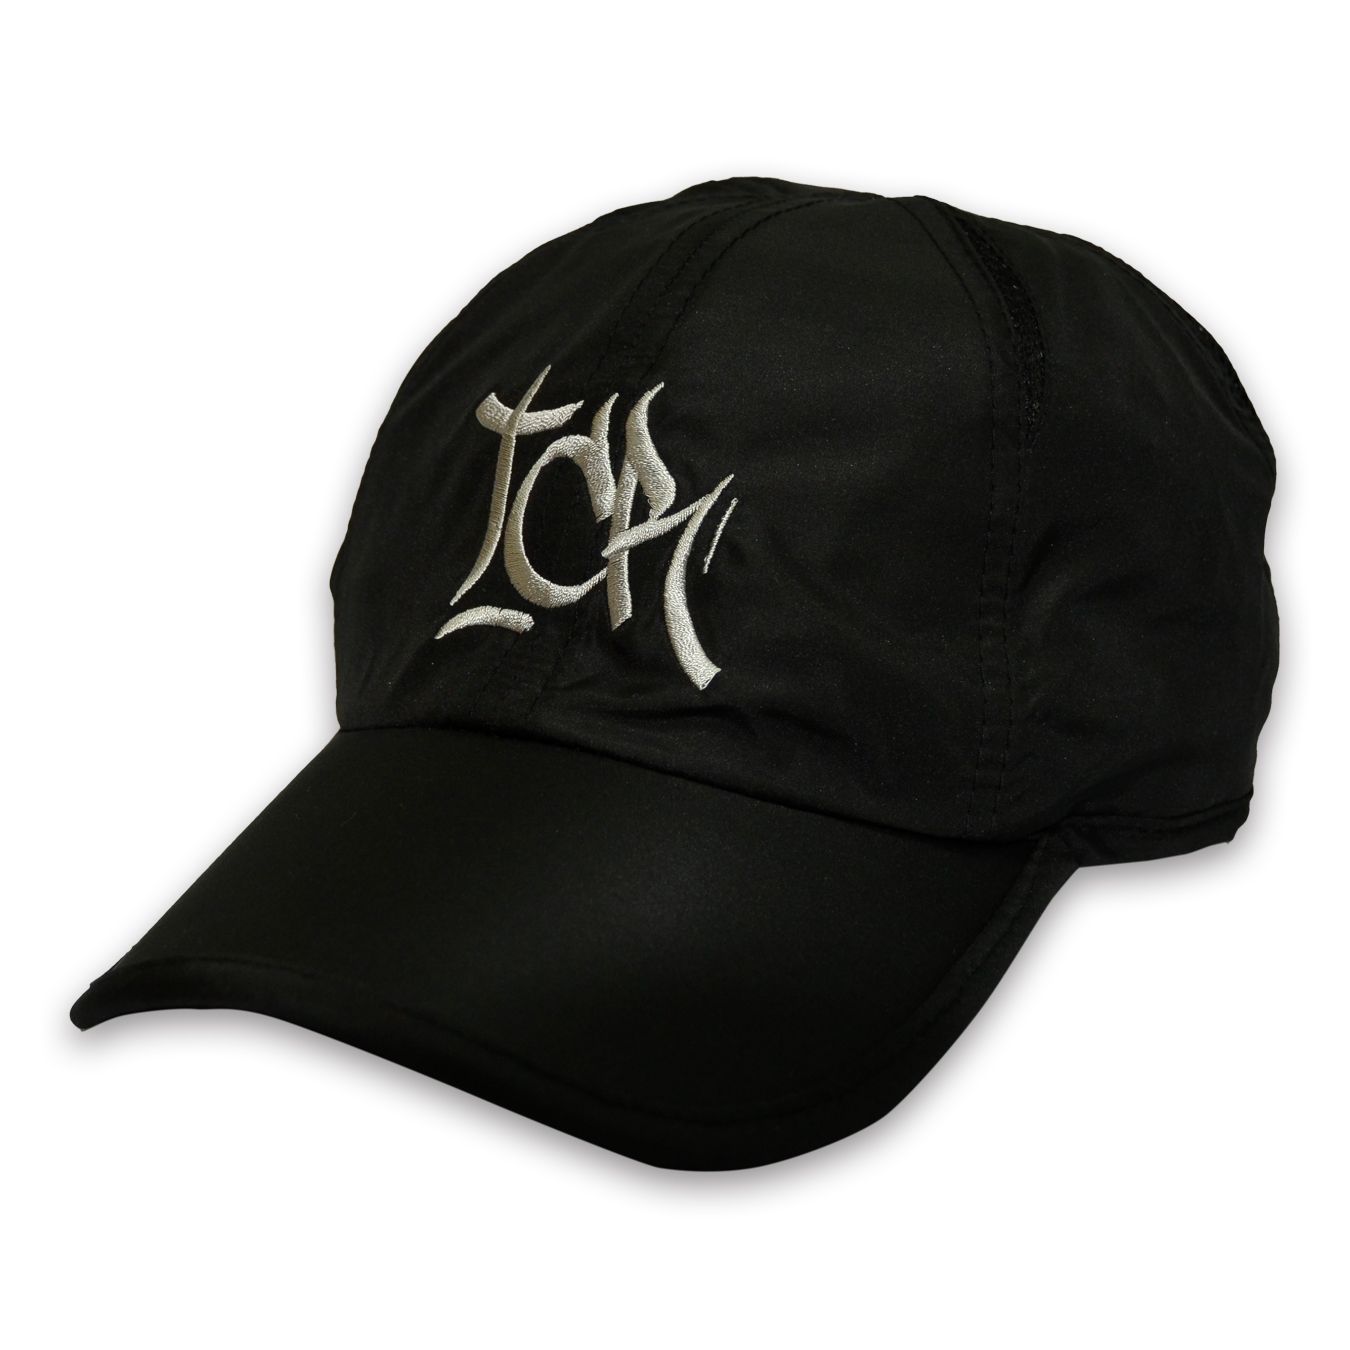 T.C.R BIG LOGO SPORTS SHELL CAP - BLACK/GRAY